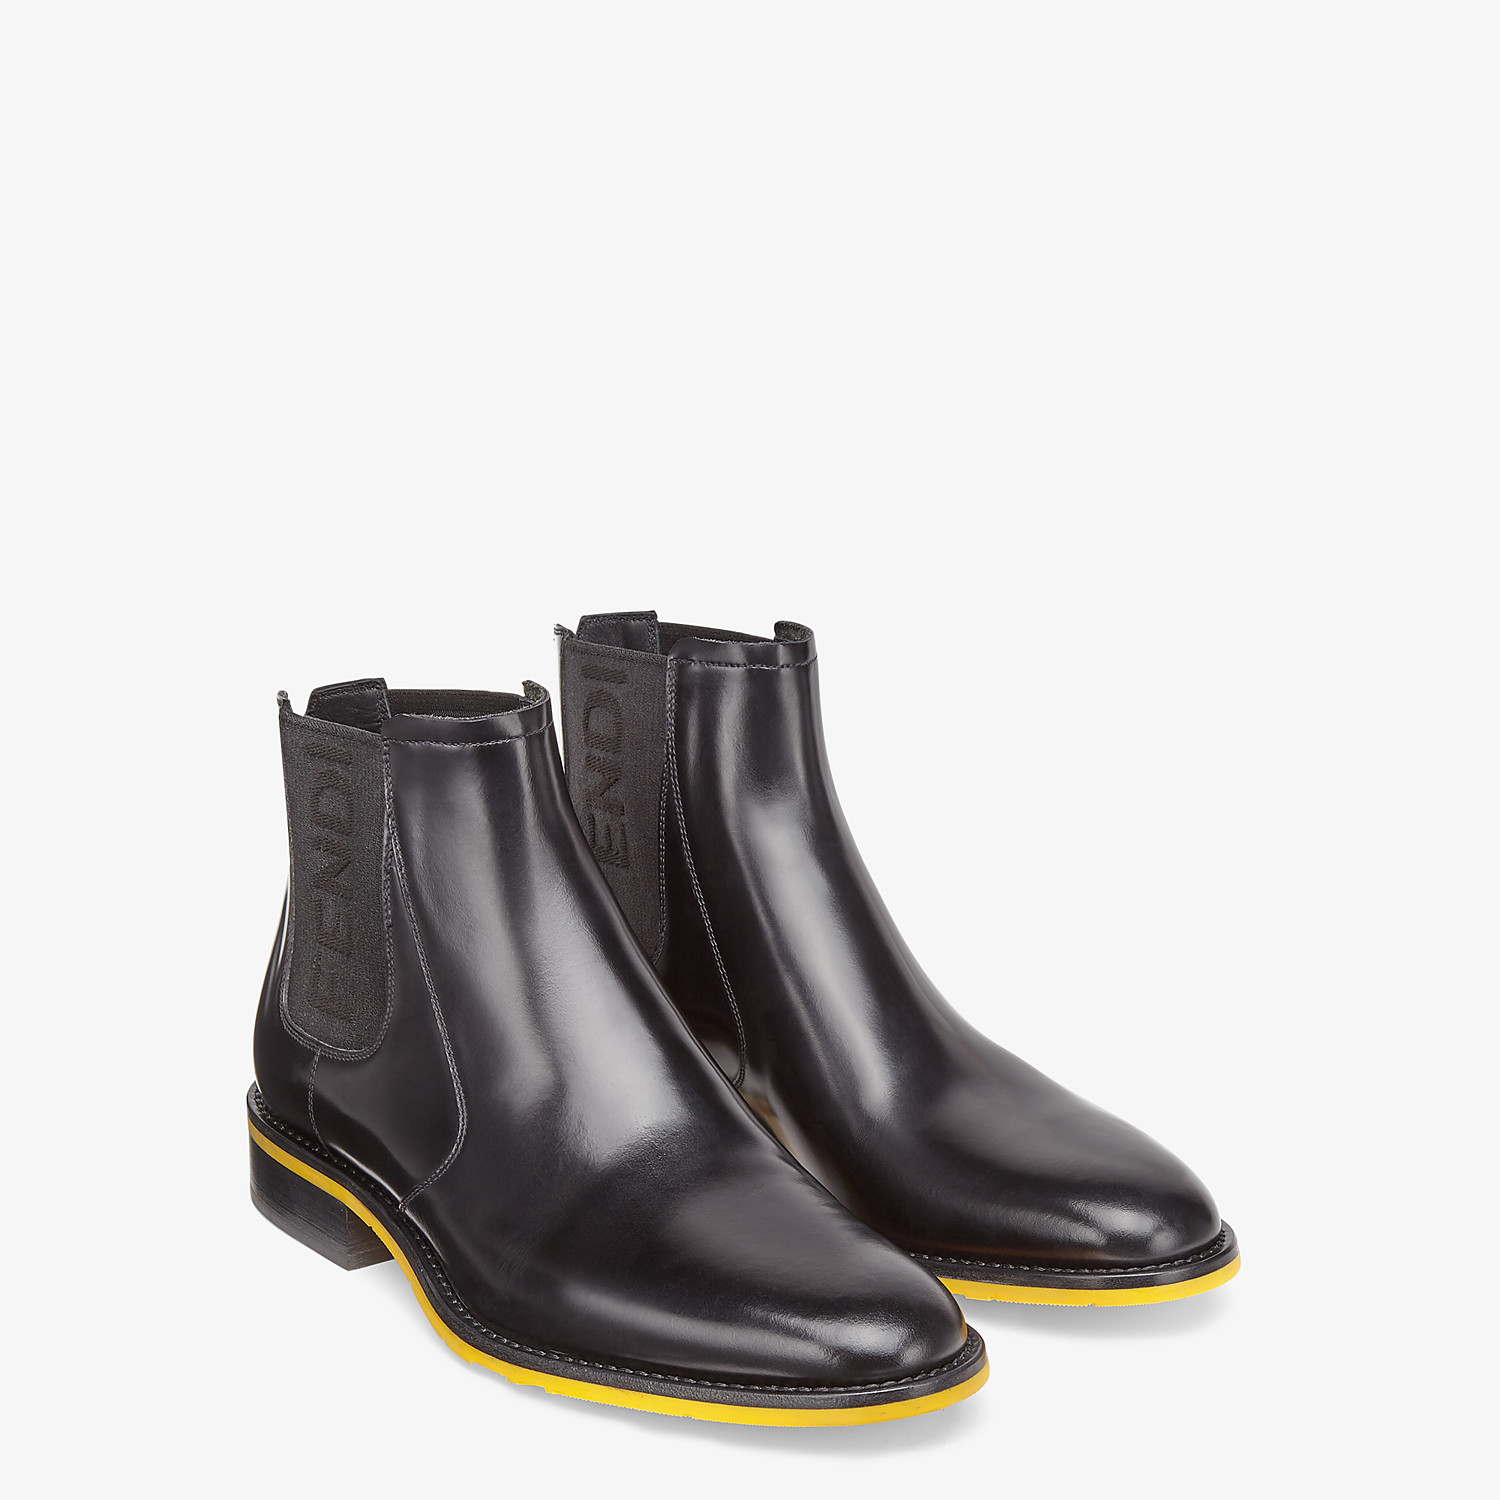 FENDI ANKLE BOOTS - Black leather Chelsea boots - view 4 detail